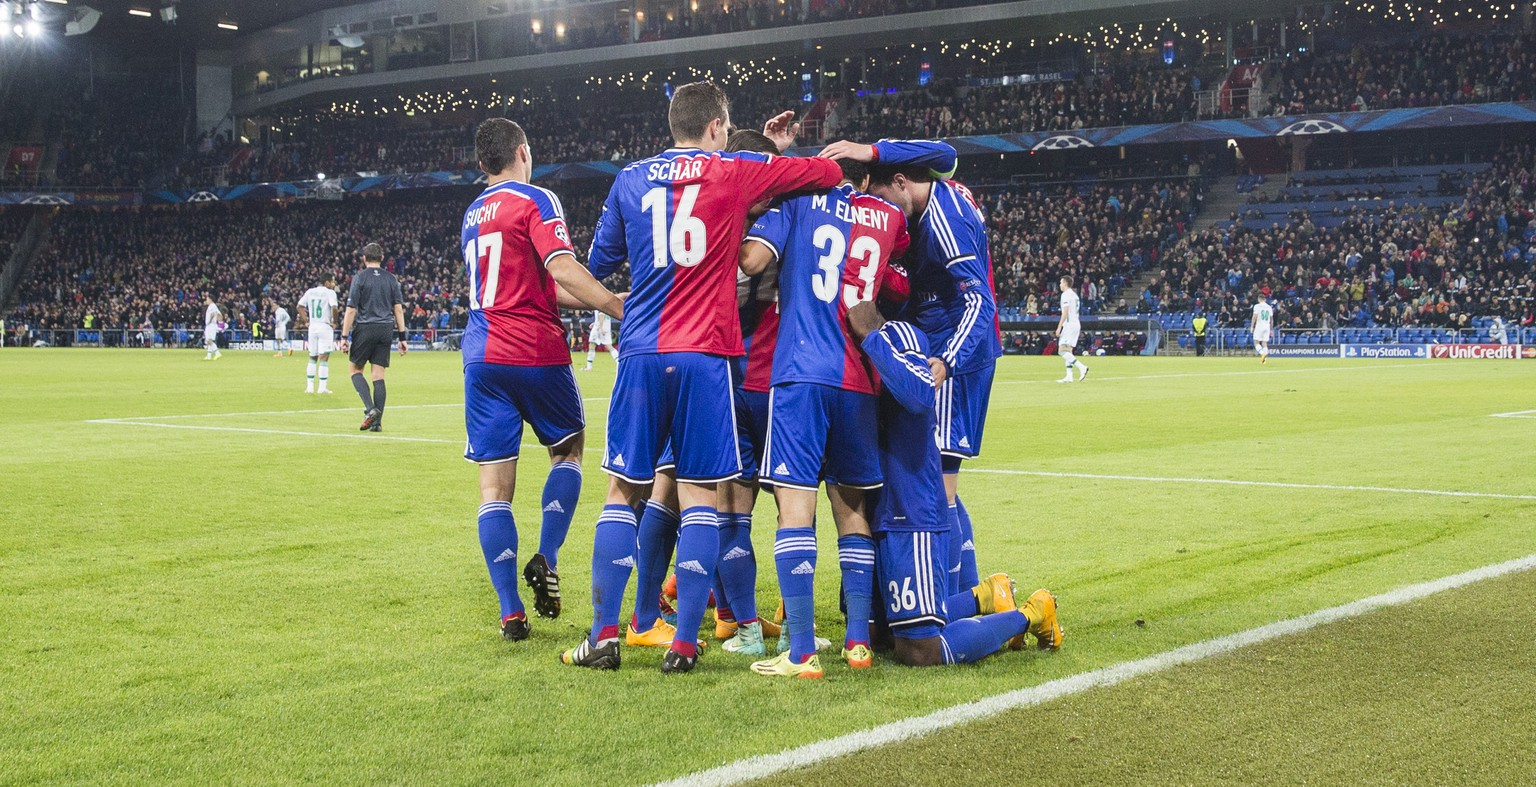 The team of FC Basel celebrates thier first goal during an UEFA Champions League group B matchday 4 soccer match between Switzerland's FC Basel 1893 and Bulgaria's PFC Ludogorets Razgrad in the St. Jakob-Park stadium in Basel, Switzerland, on Tuesday, November 4, 2014. (KEYSTONE/Patrick Straub)